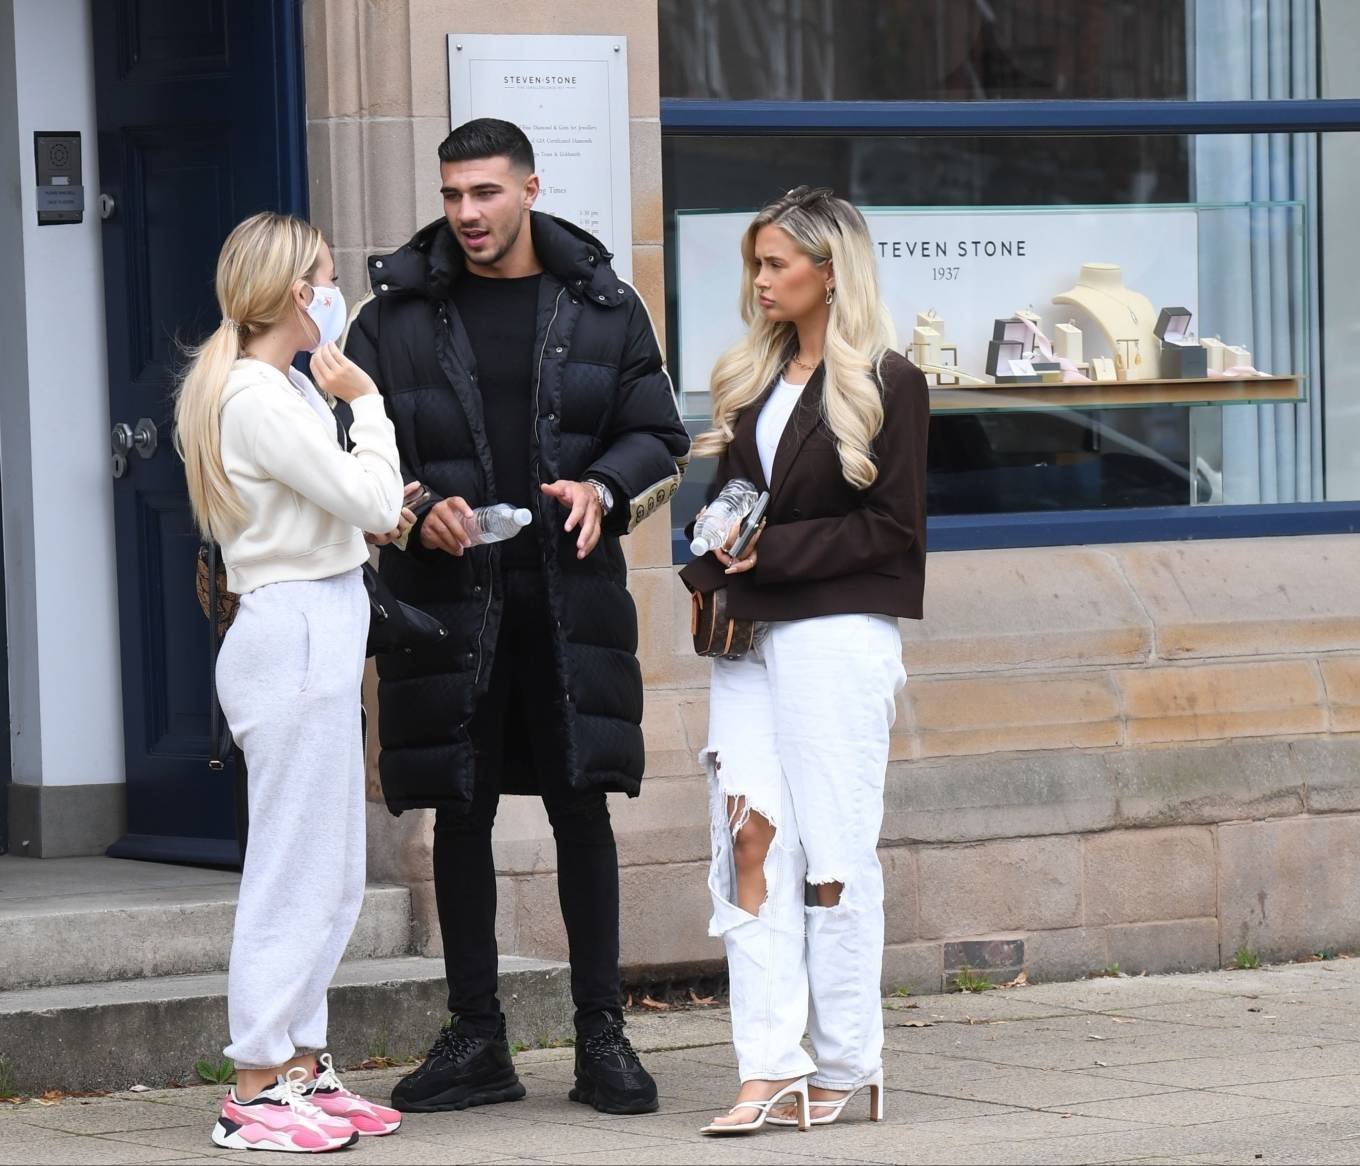 Molly-Mae Hague 2020 : Molly-Mae Hague and Tommy Fury – Seen while out in Cheshire -07